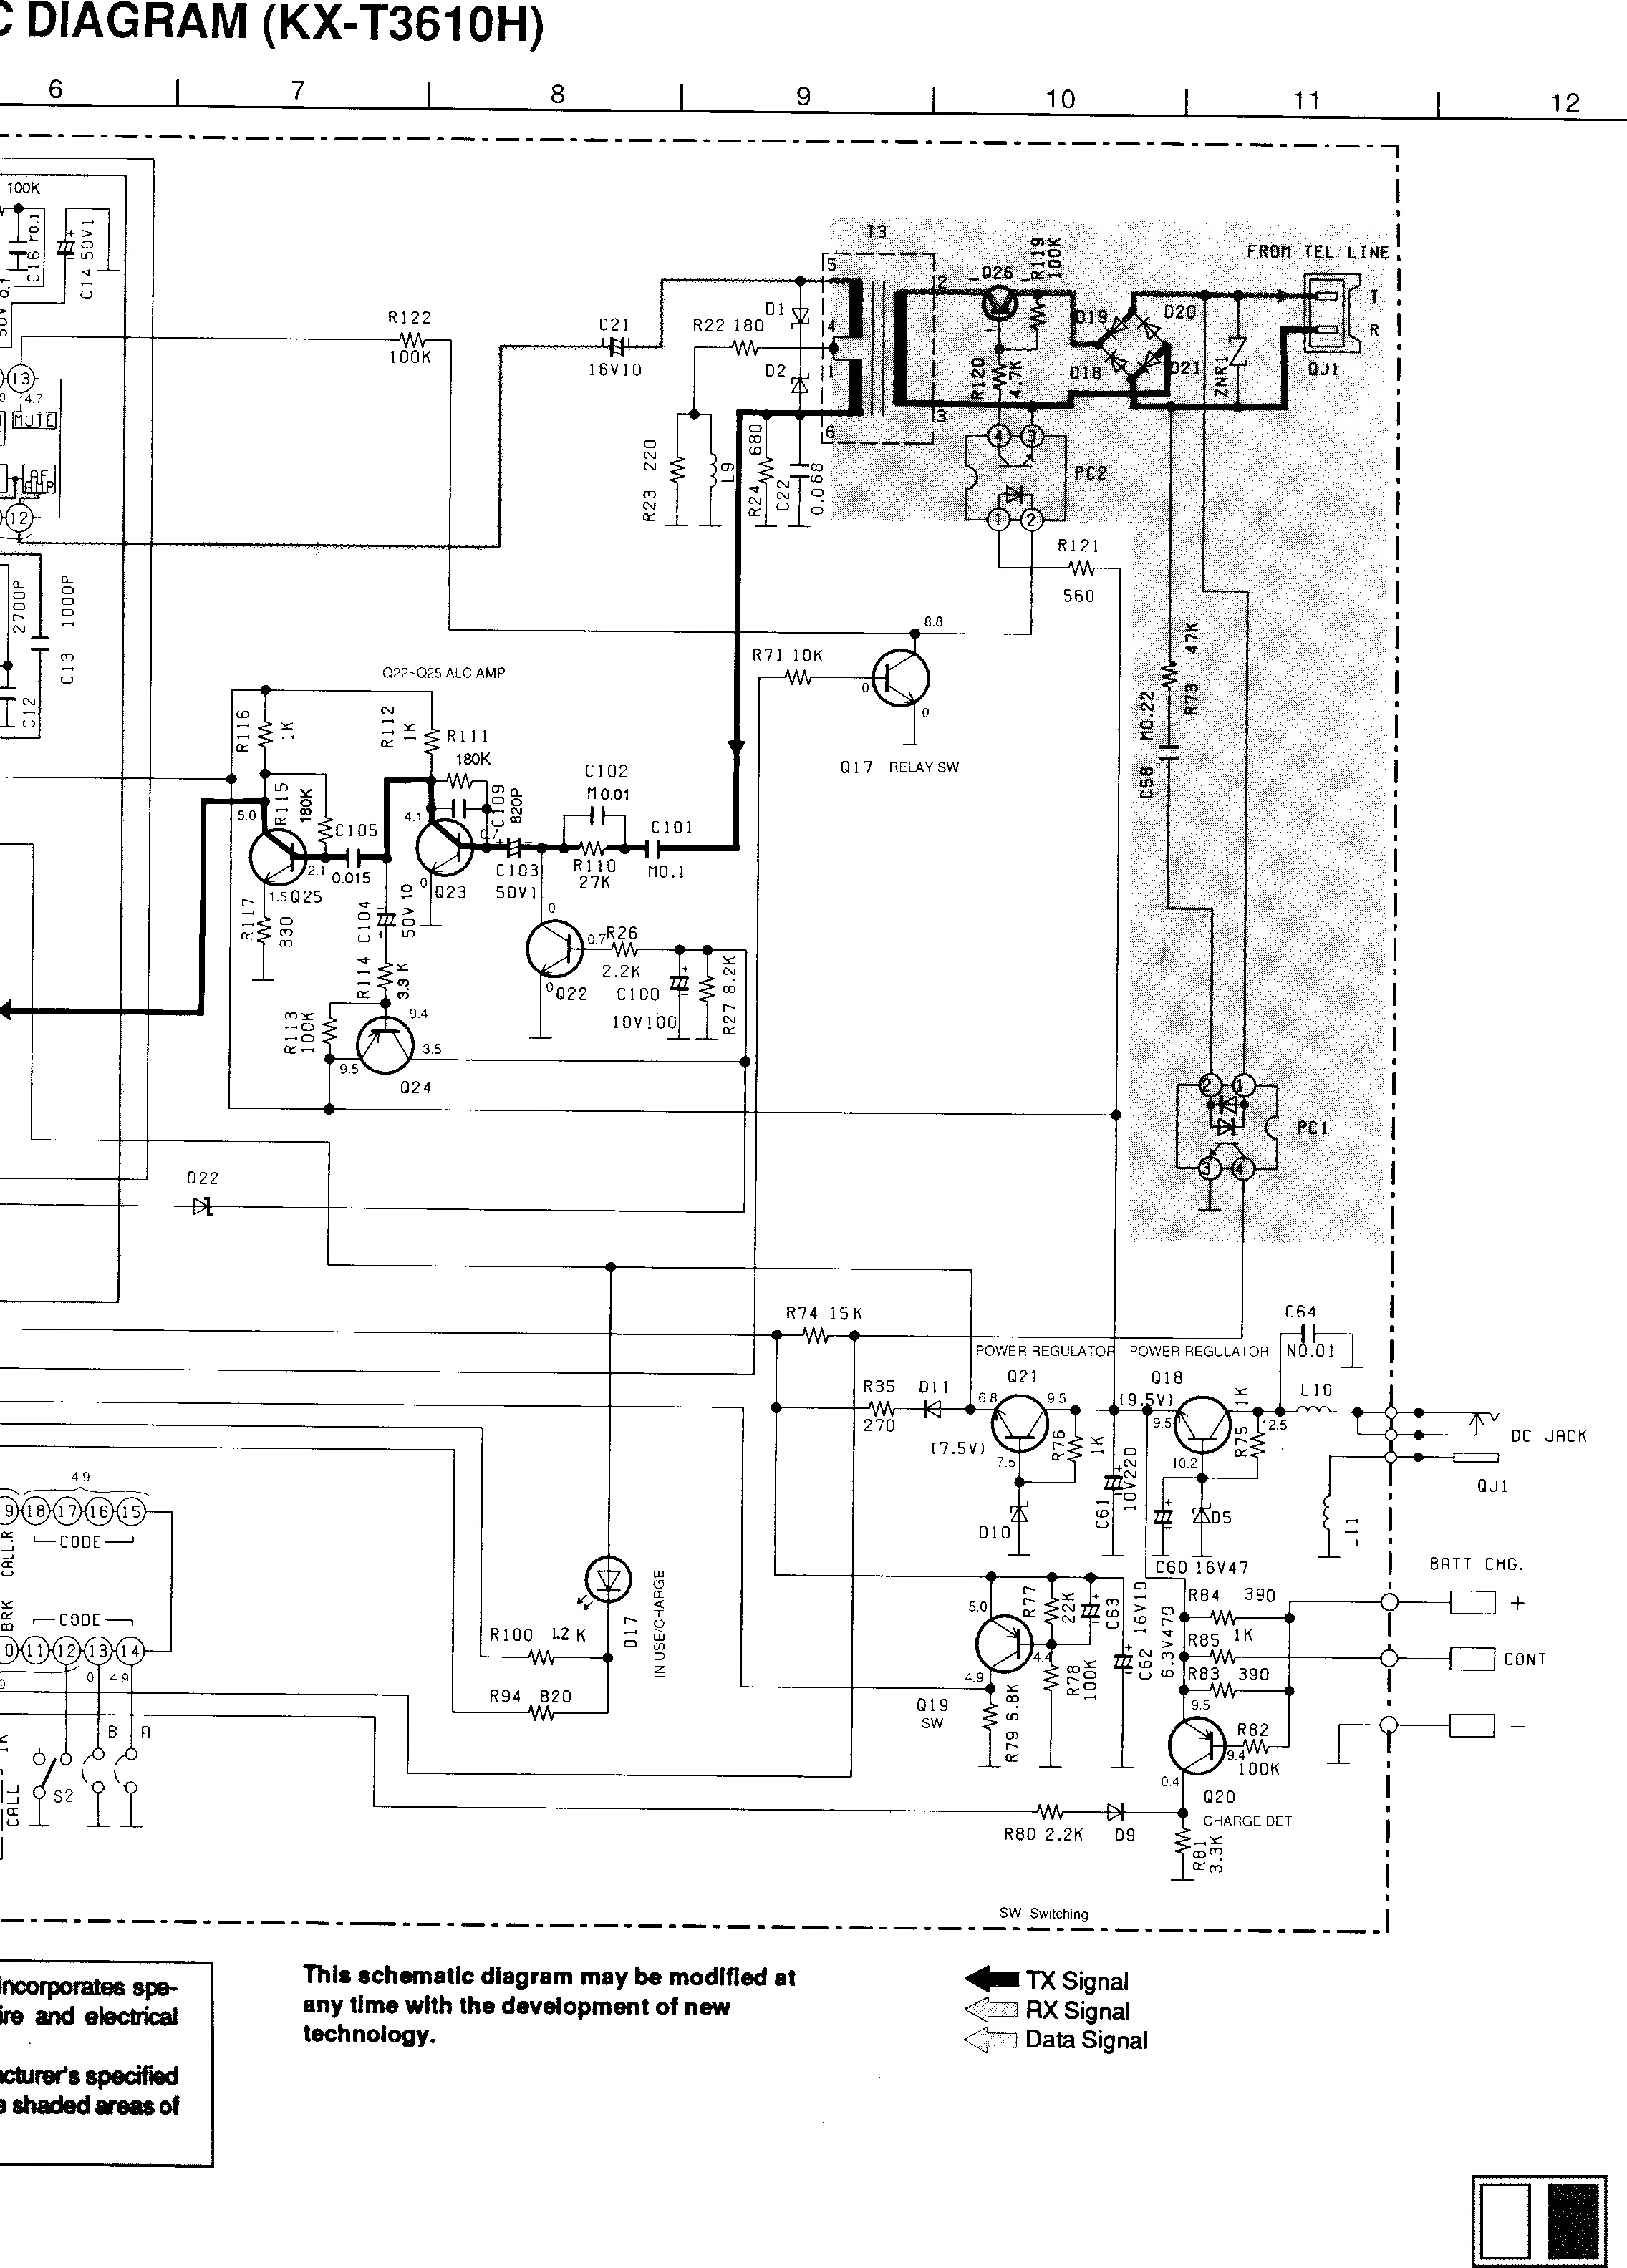 Wiring Diagram For Guitar Effects. Wiring. Electrical